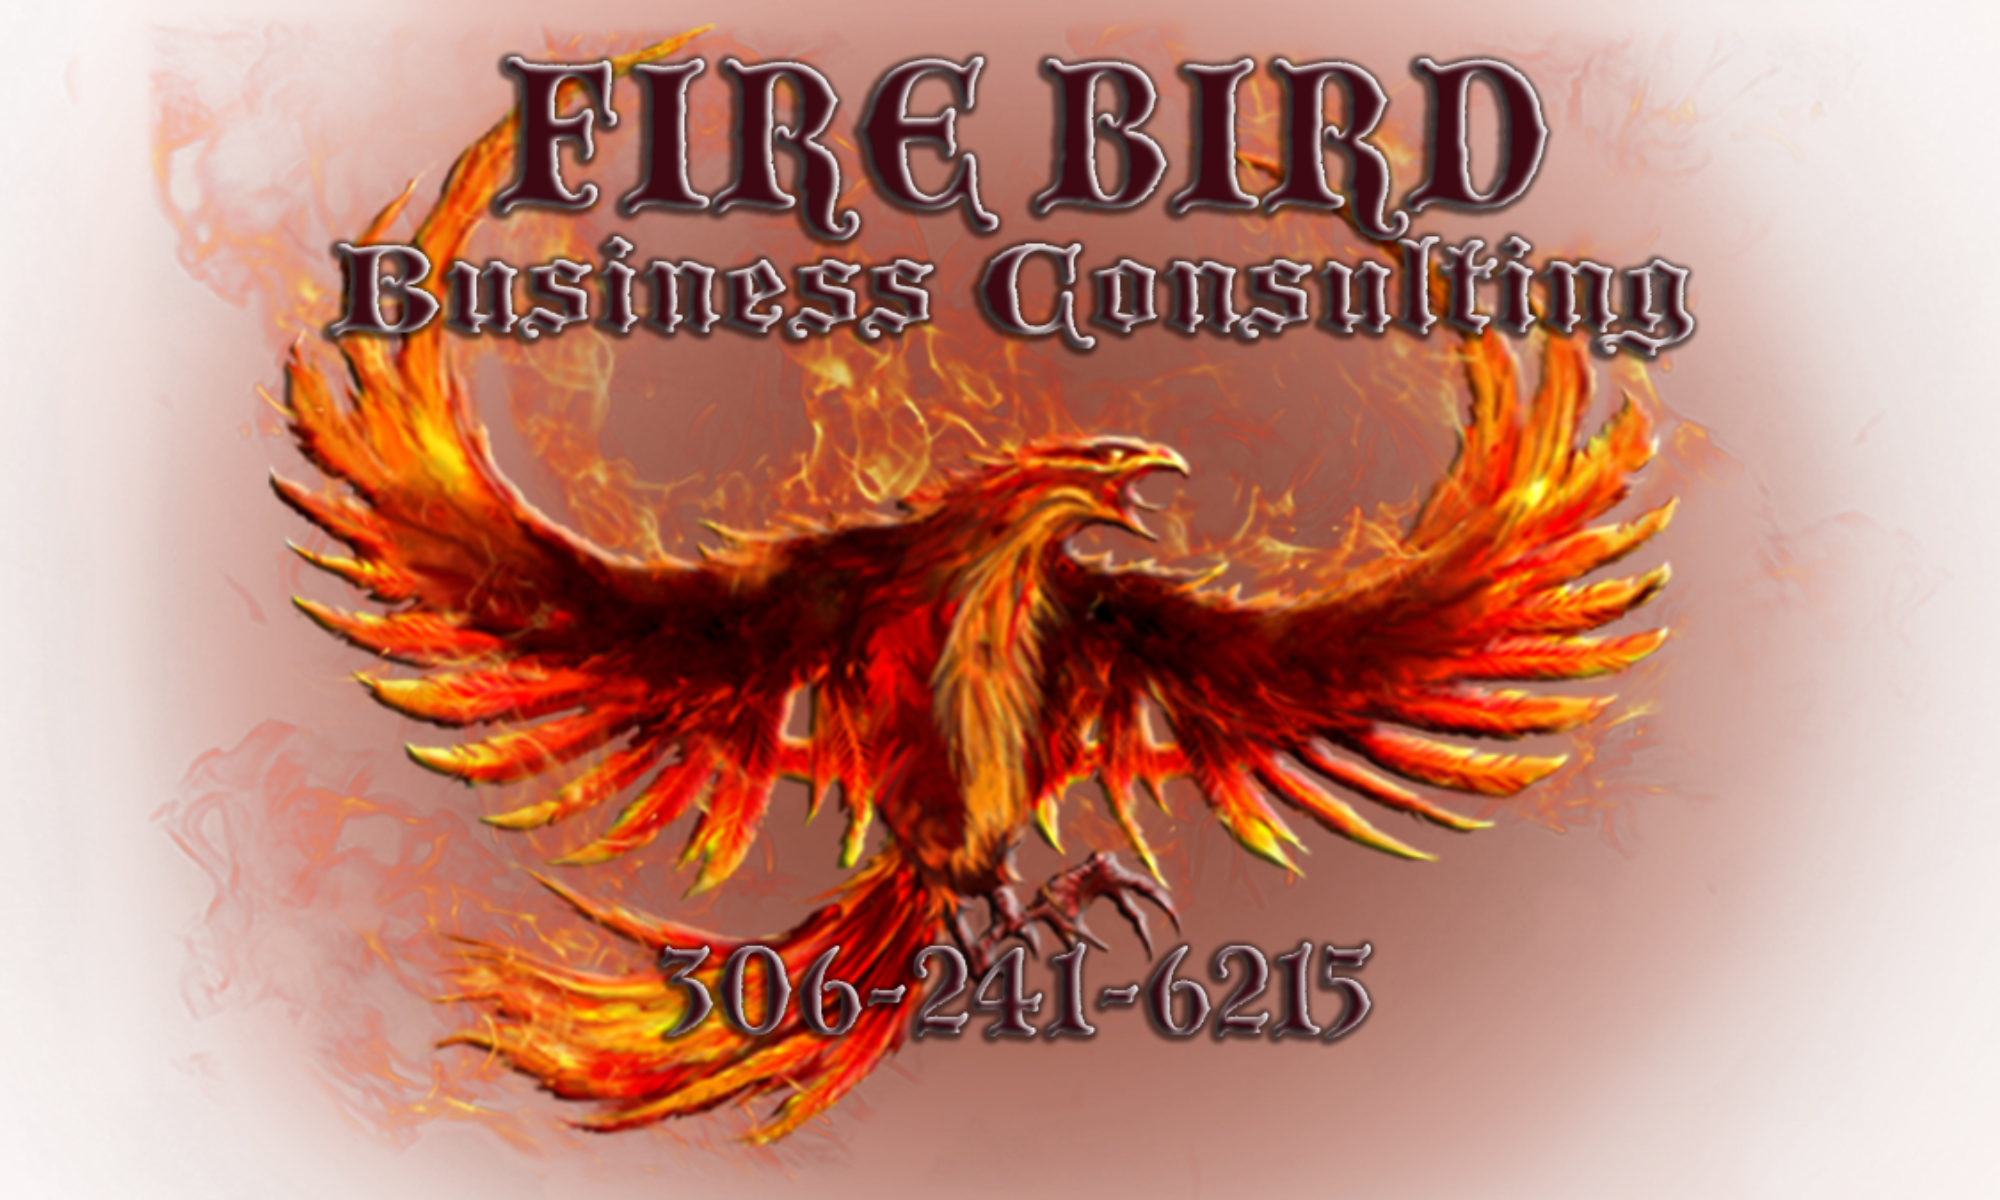 Firebird Business Consulting Ltd. - Blog Site